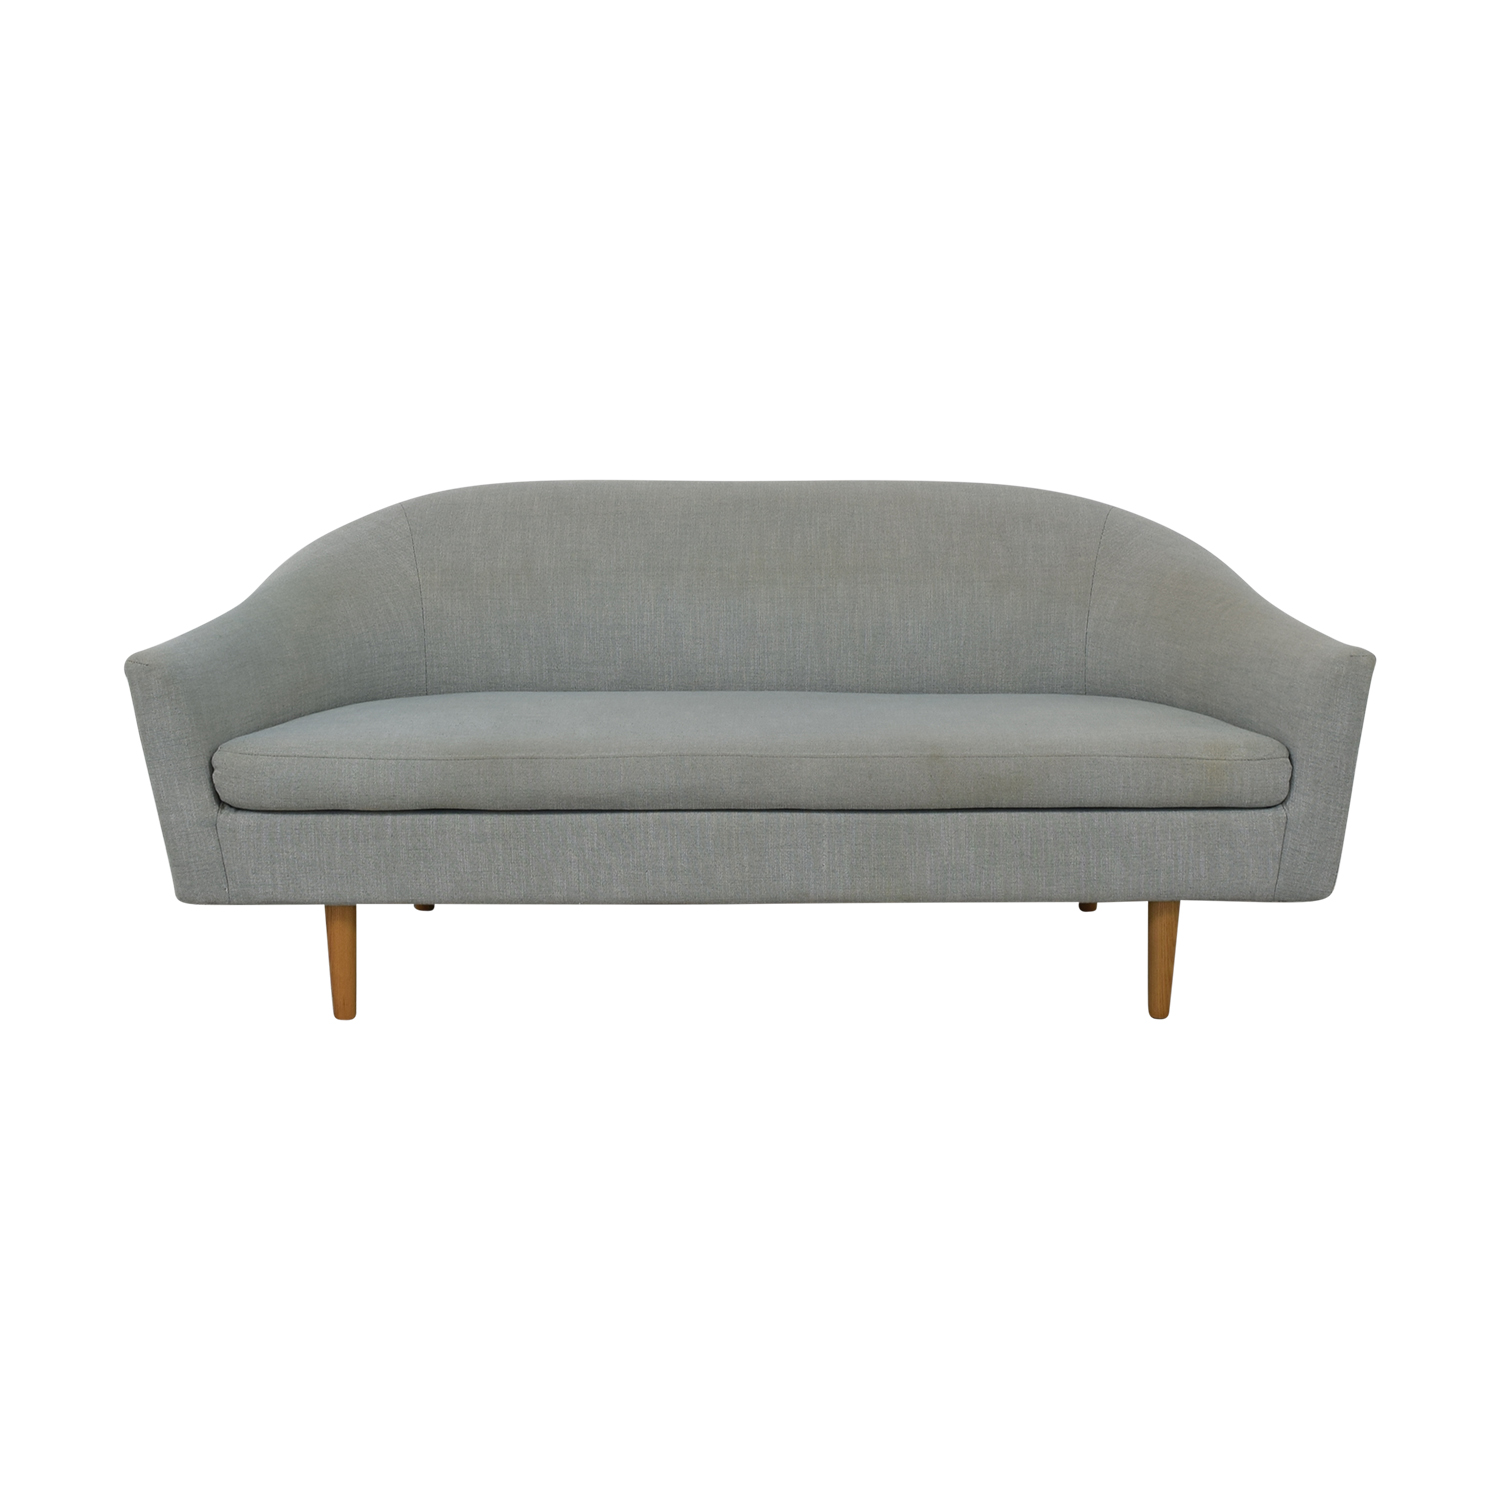 West Elm West Elm Grey Single Cushion Sofa